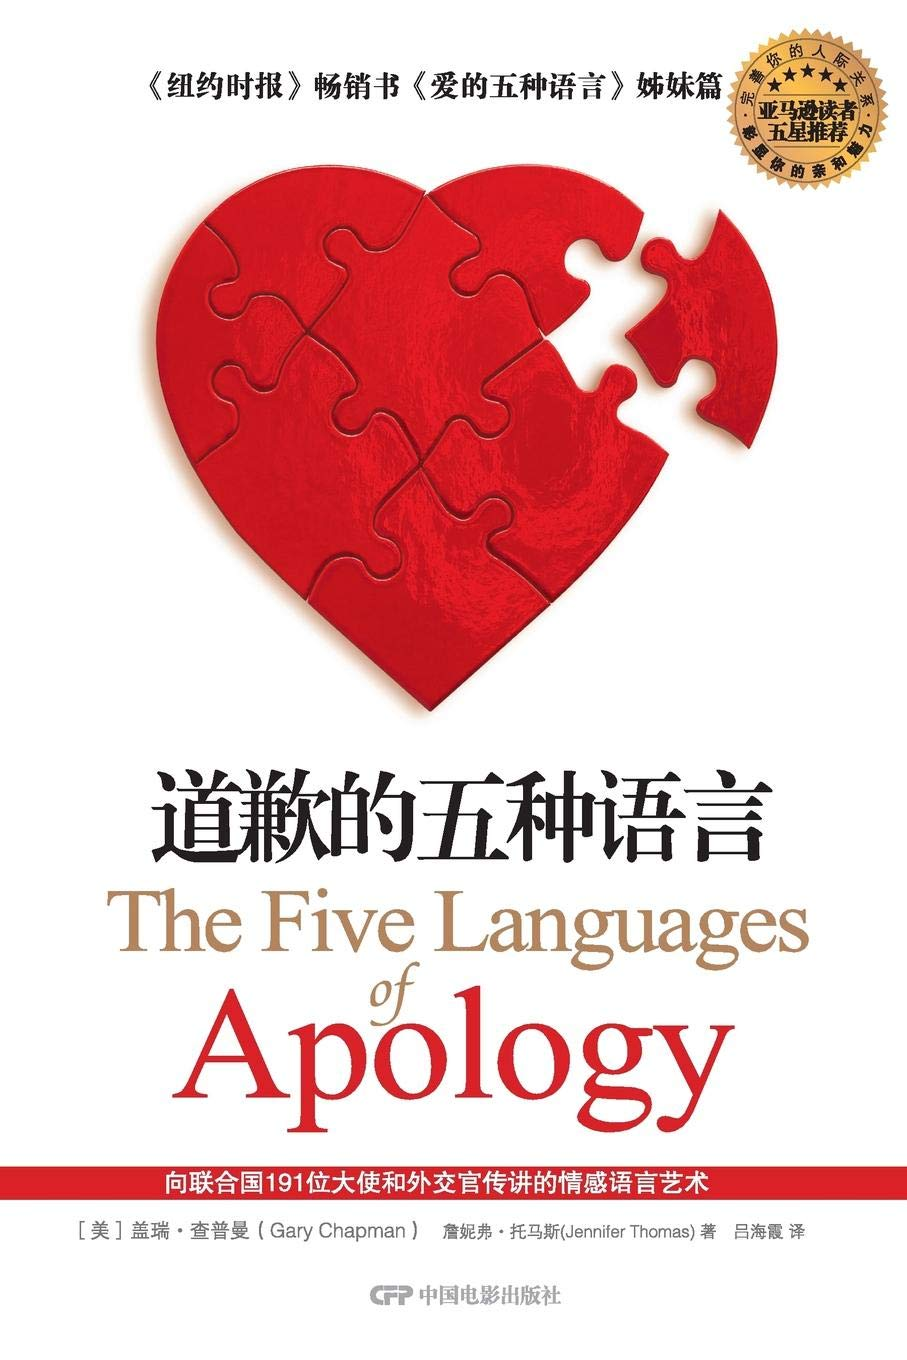 Download The Five Languages of Apology (Chinese Edition) ebook